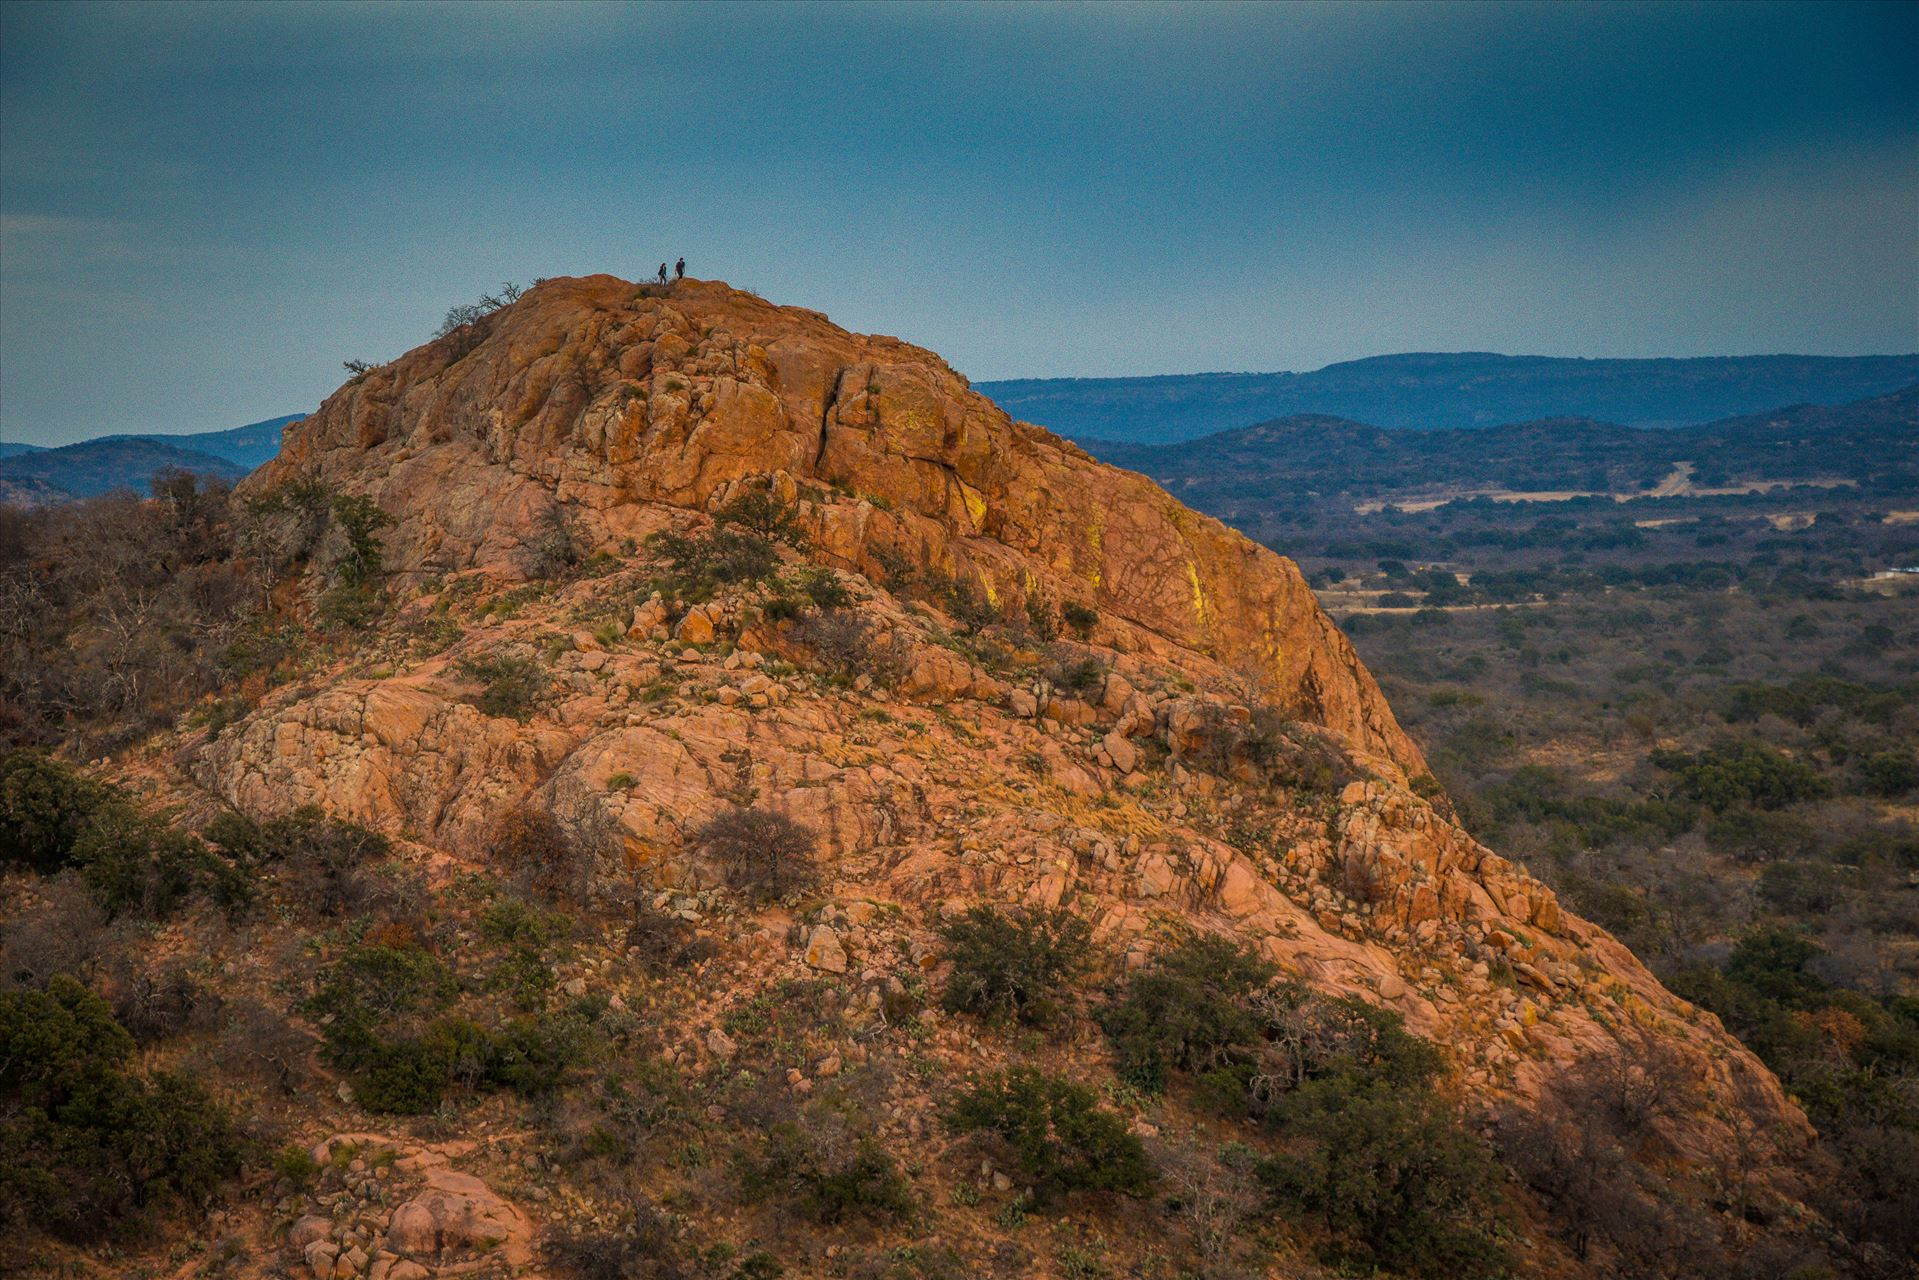 20140112-Enchanted Rock-DSLR-015.jpg